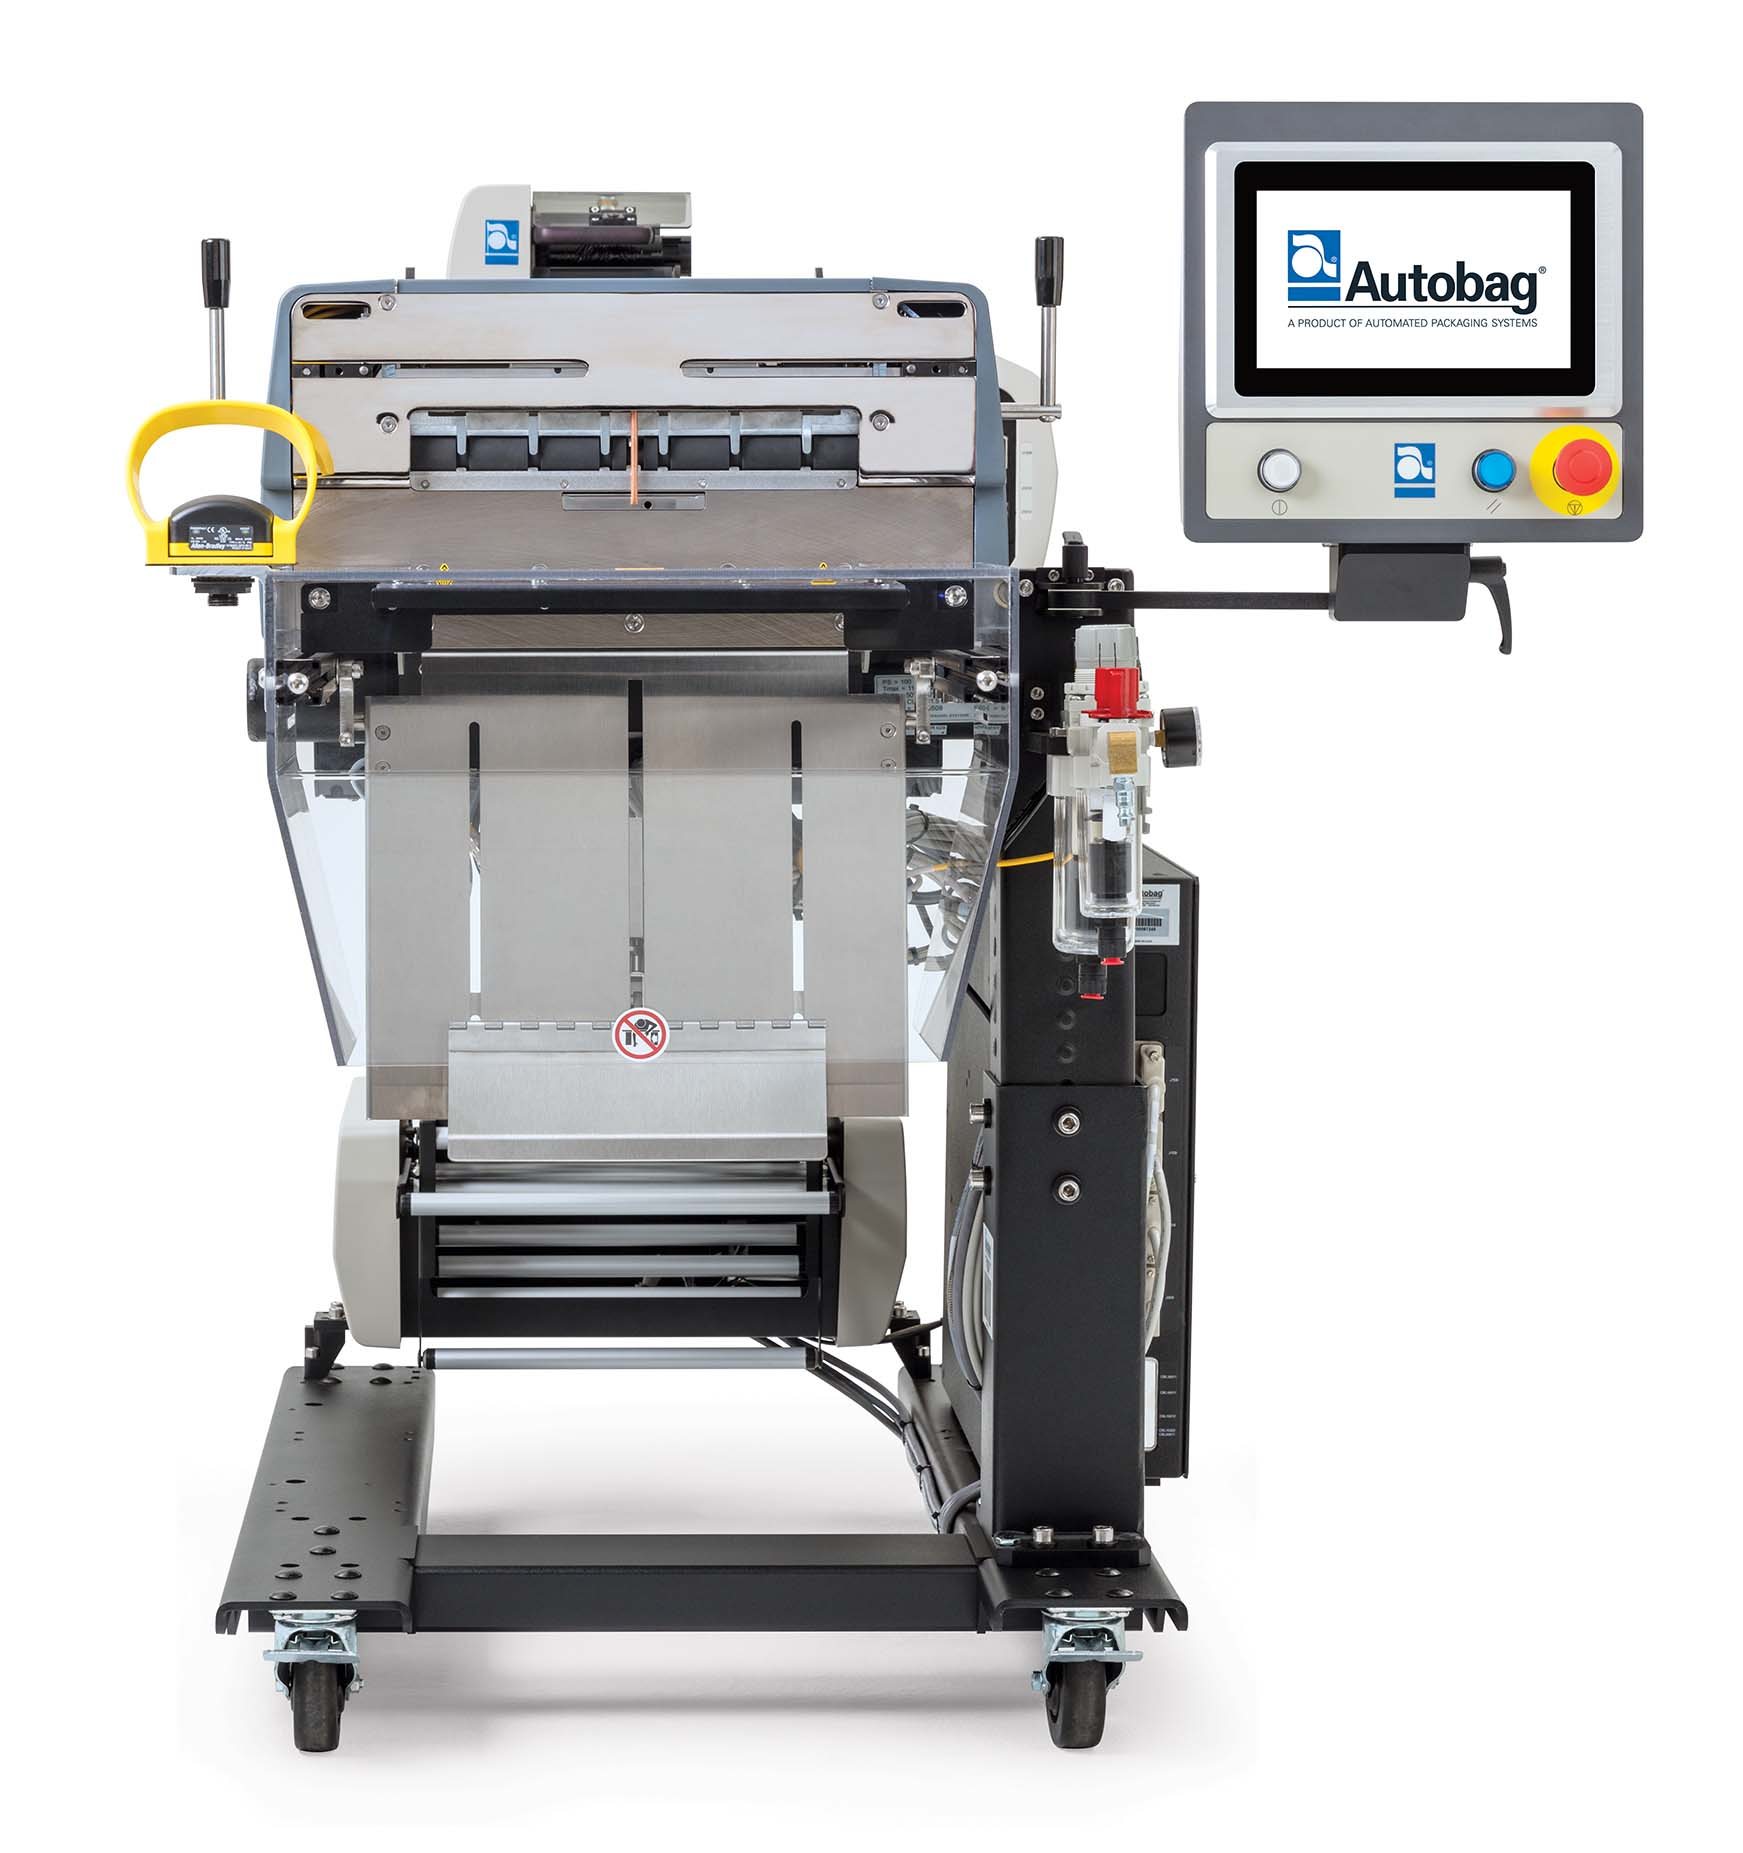 AutoLabel 500 high resolution inline printer front view